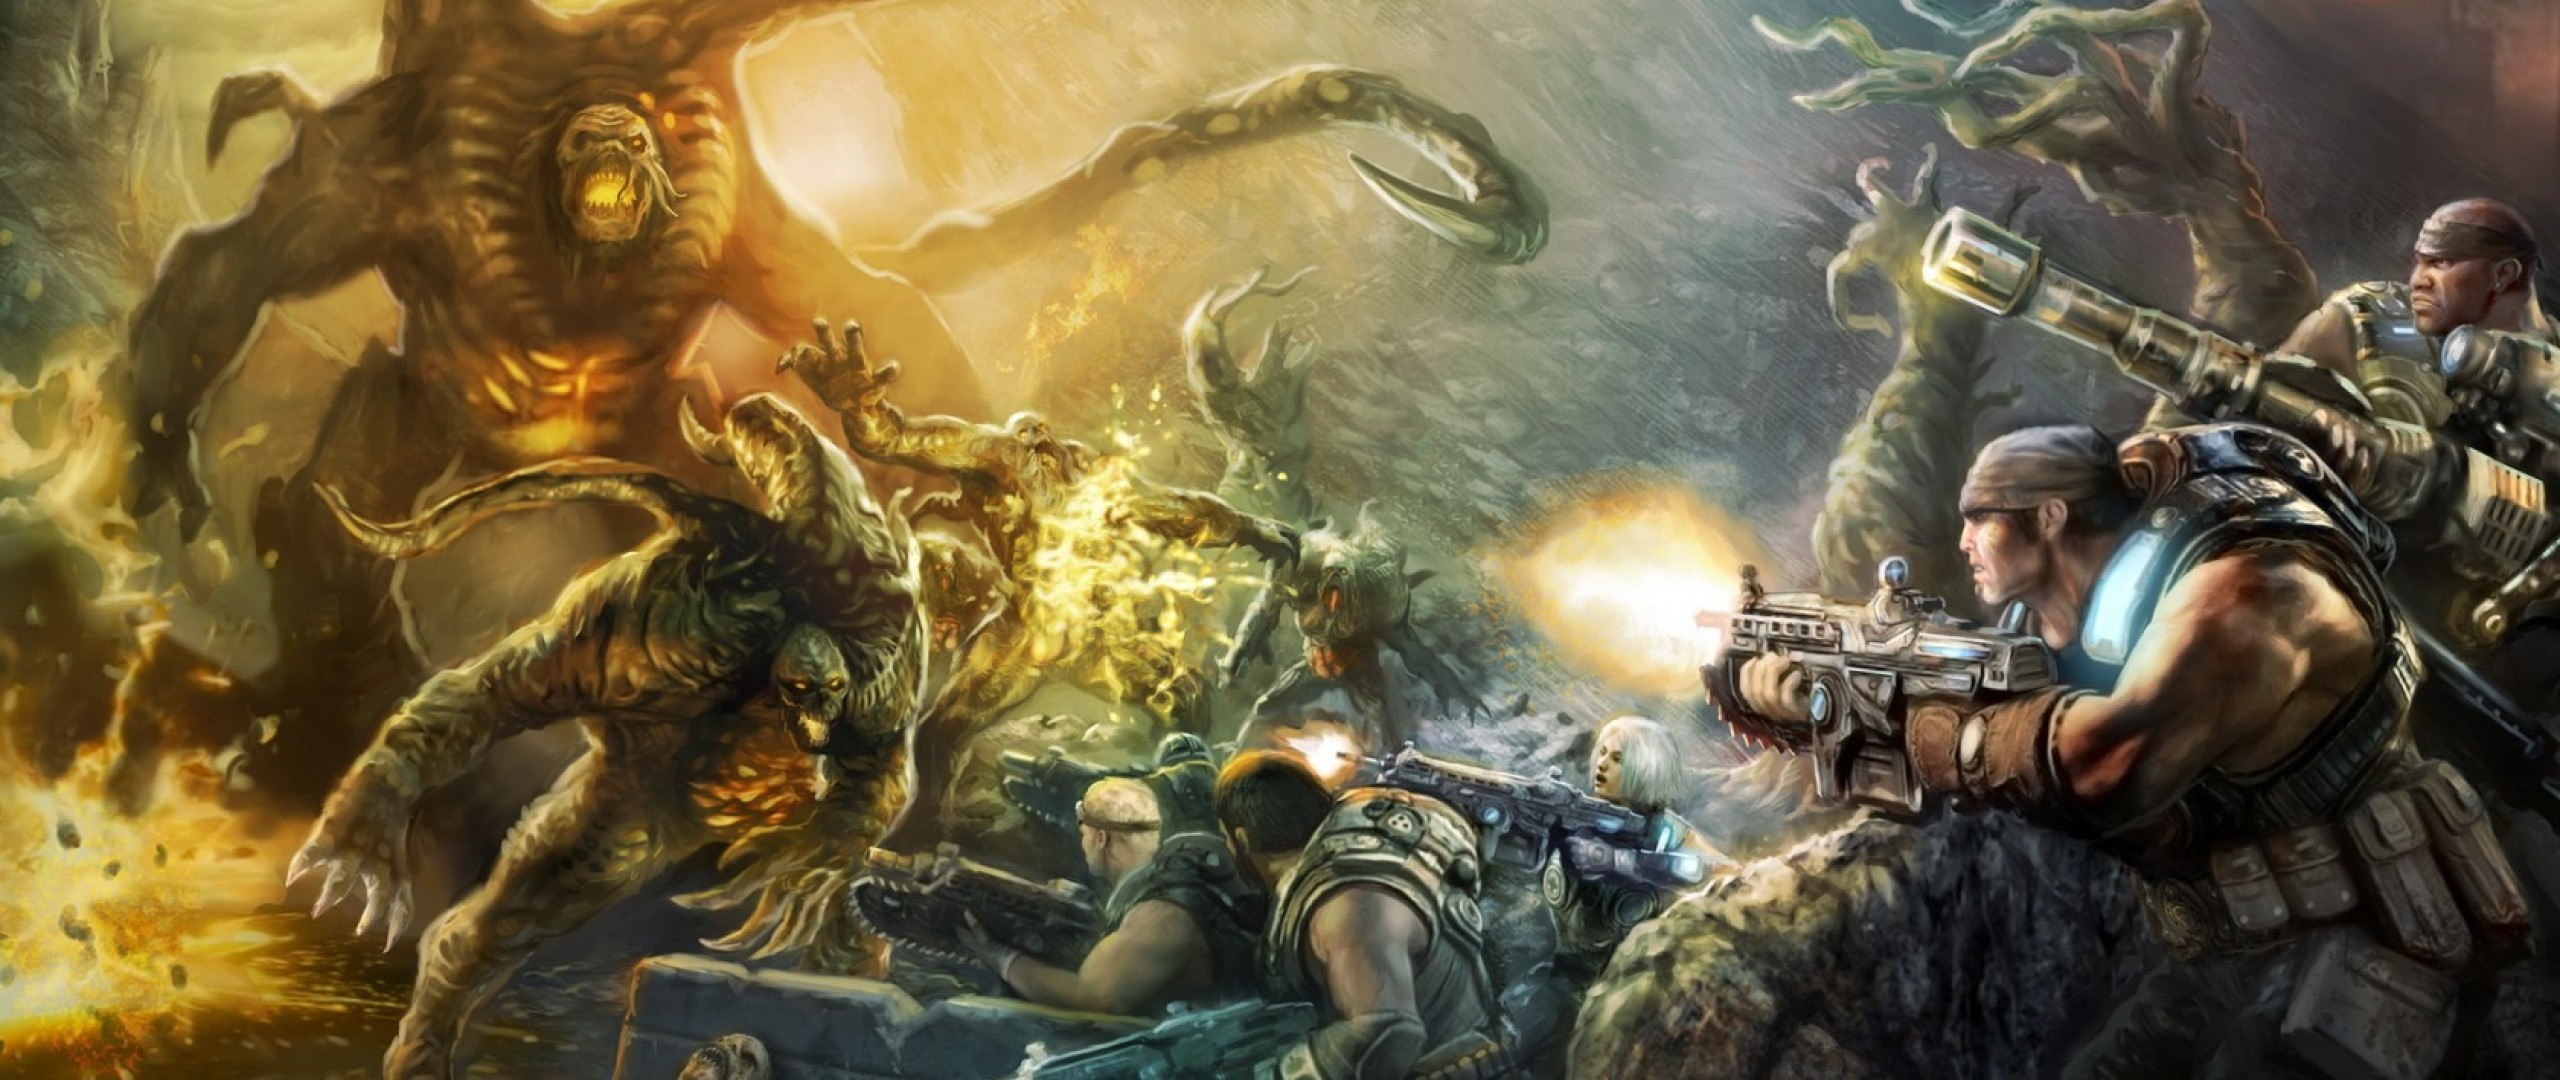 Preview wallpaper gears of war judgment, art, video game, epic games  2560×1080